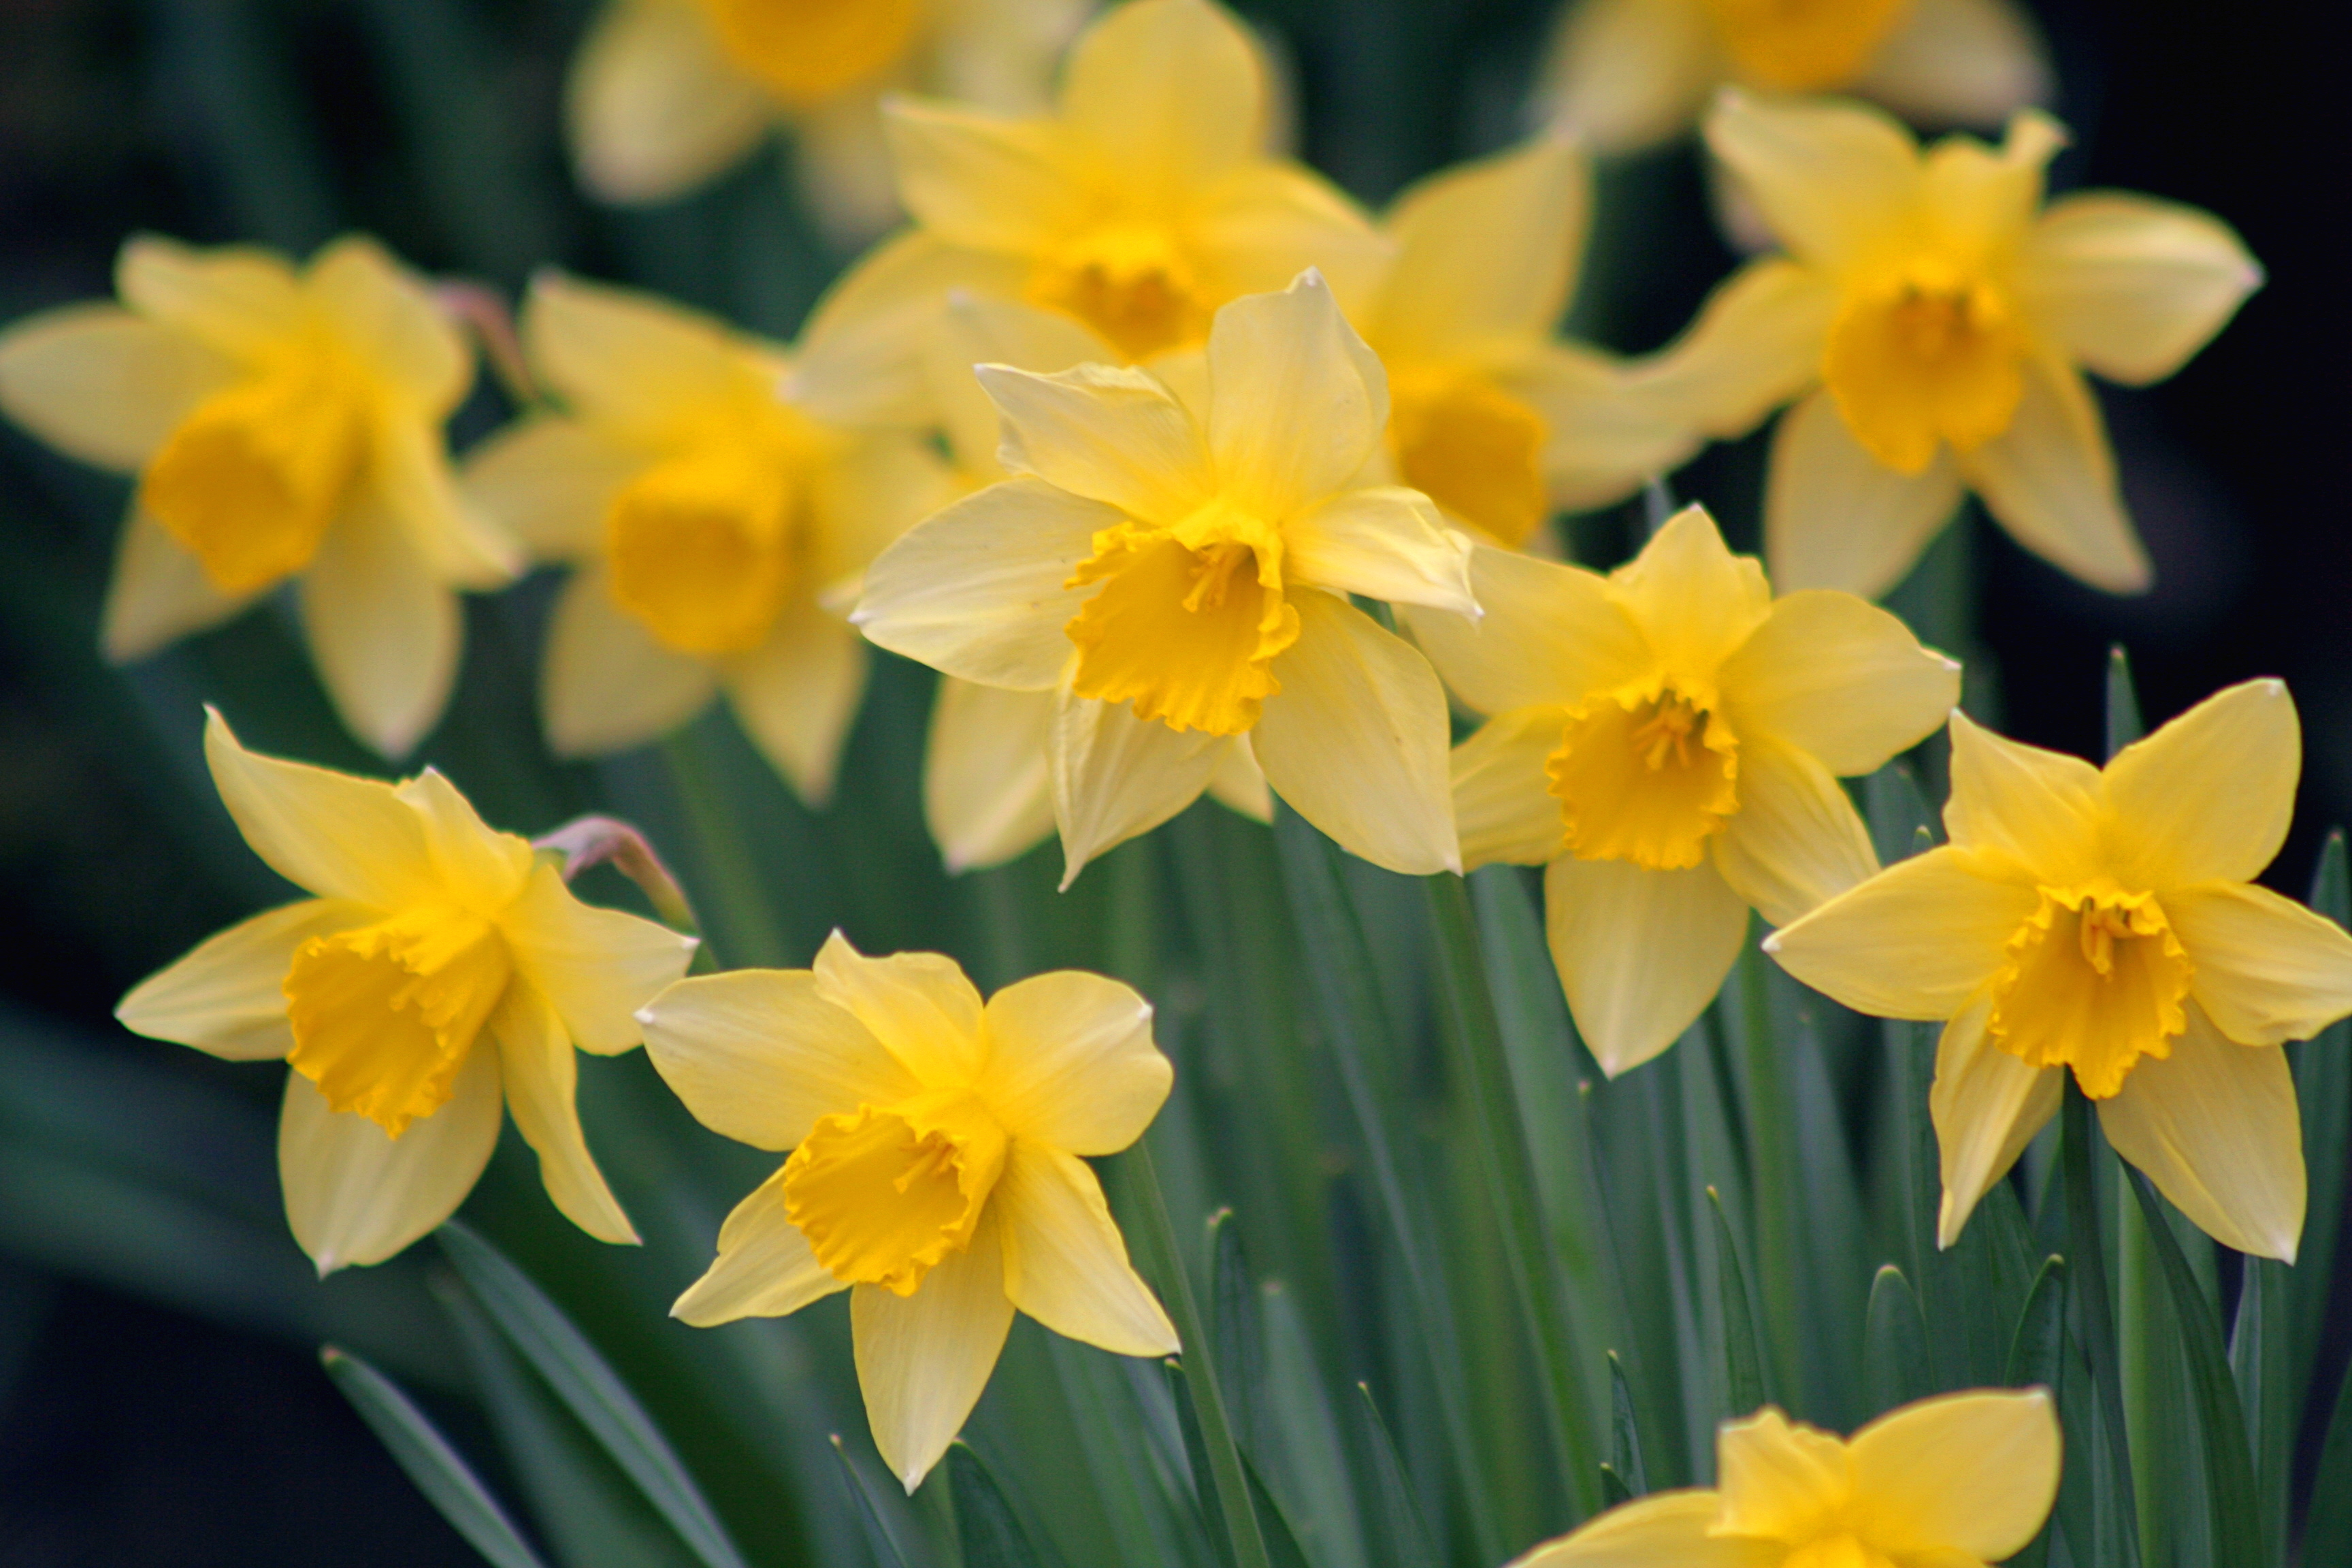 01_Massachusetts_Latitudes_Daffodils_Flickr